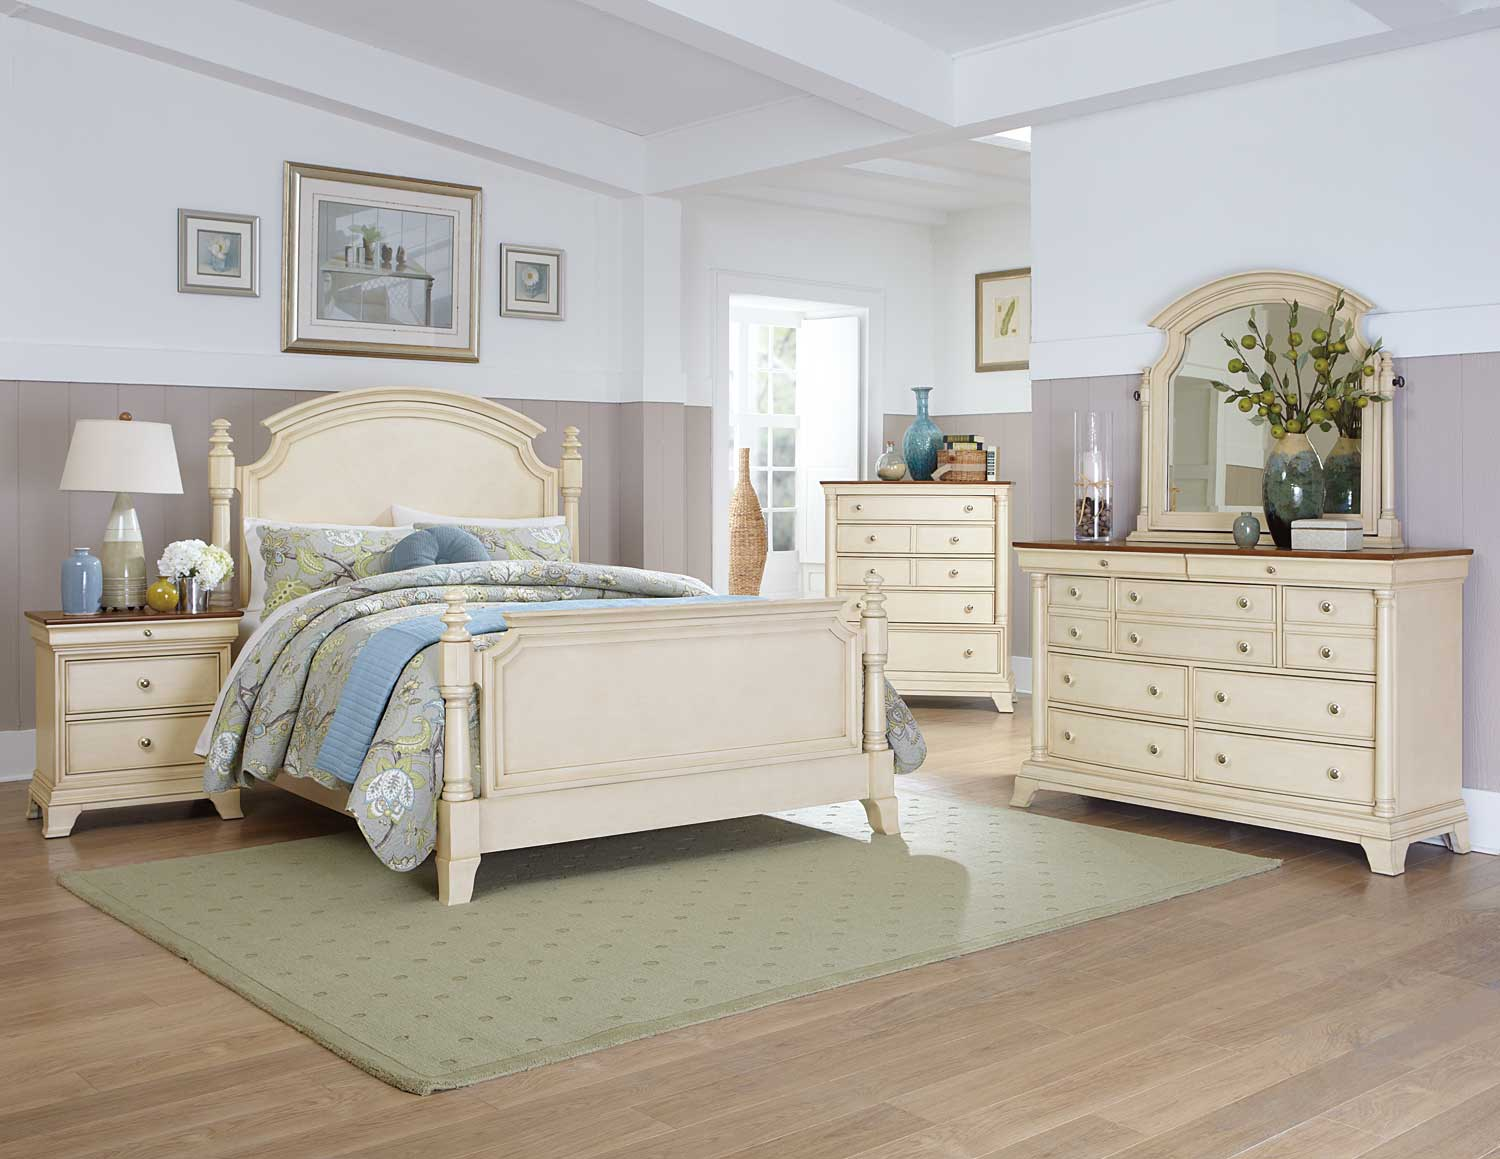 Homelegance Inglewood Ii Bedroom Set White B1402w Bed